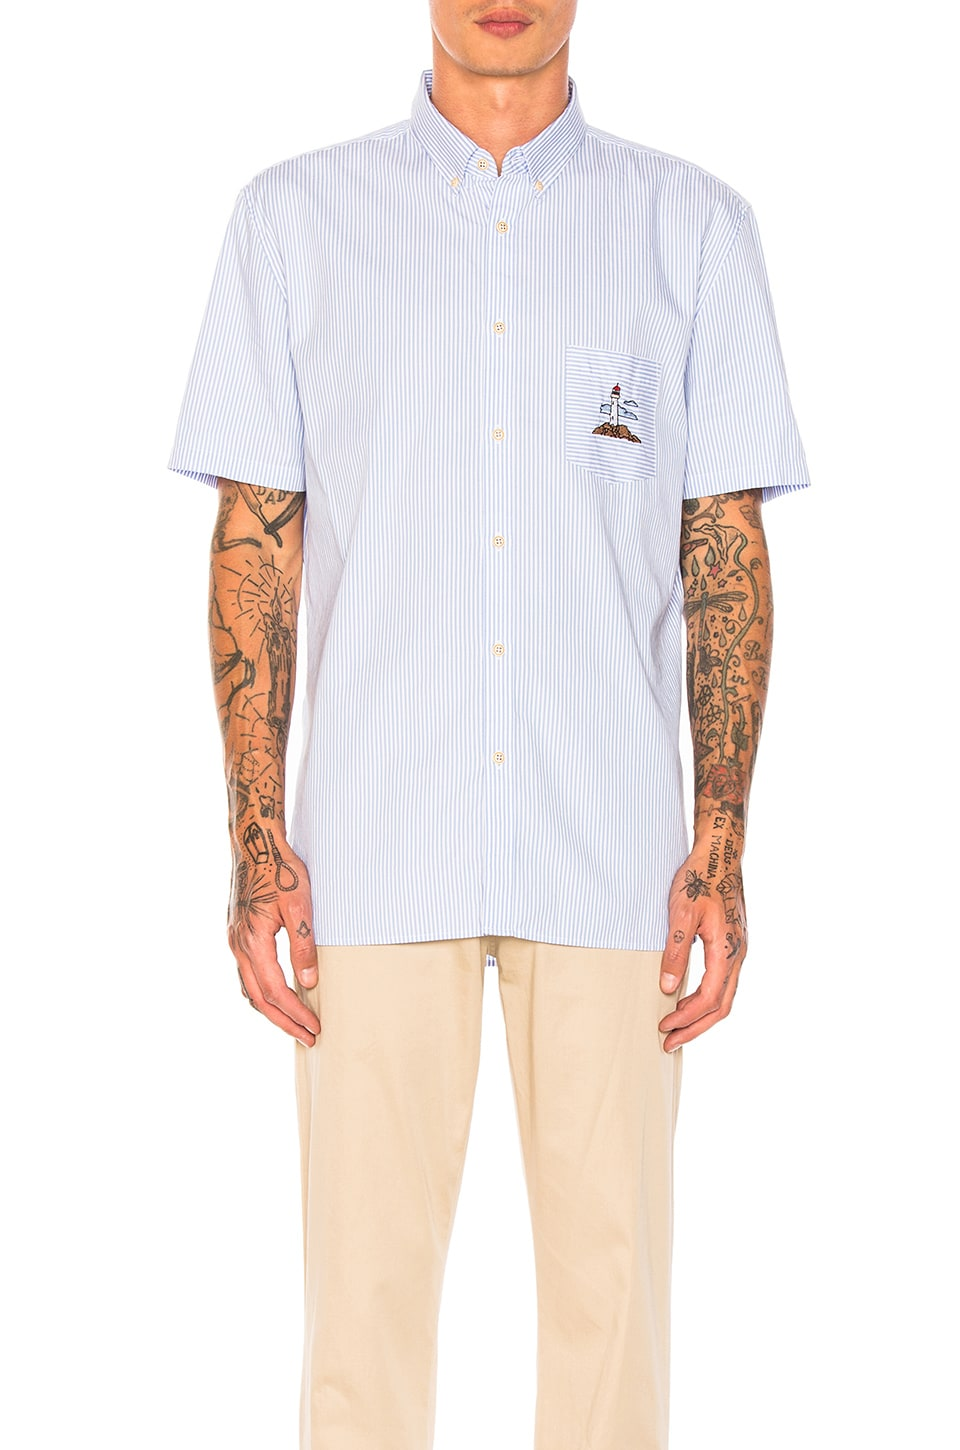 B.Preppy Shirt by Barney Cools